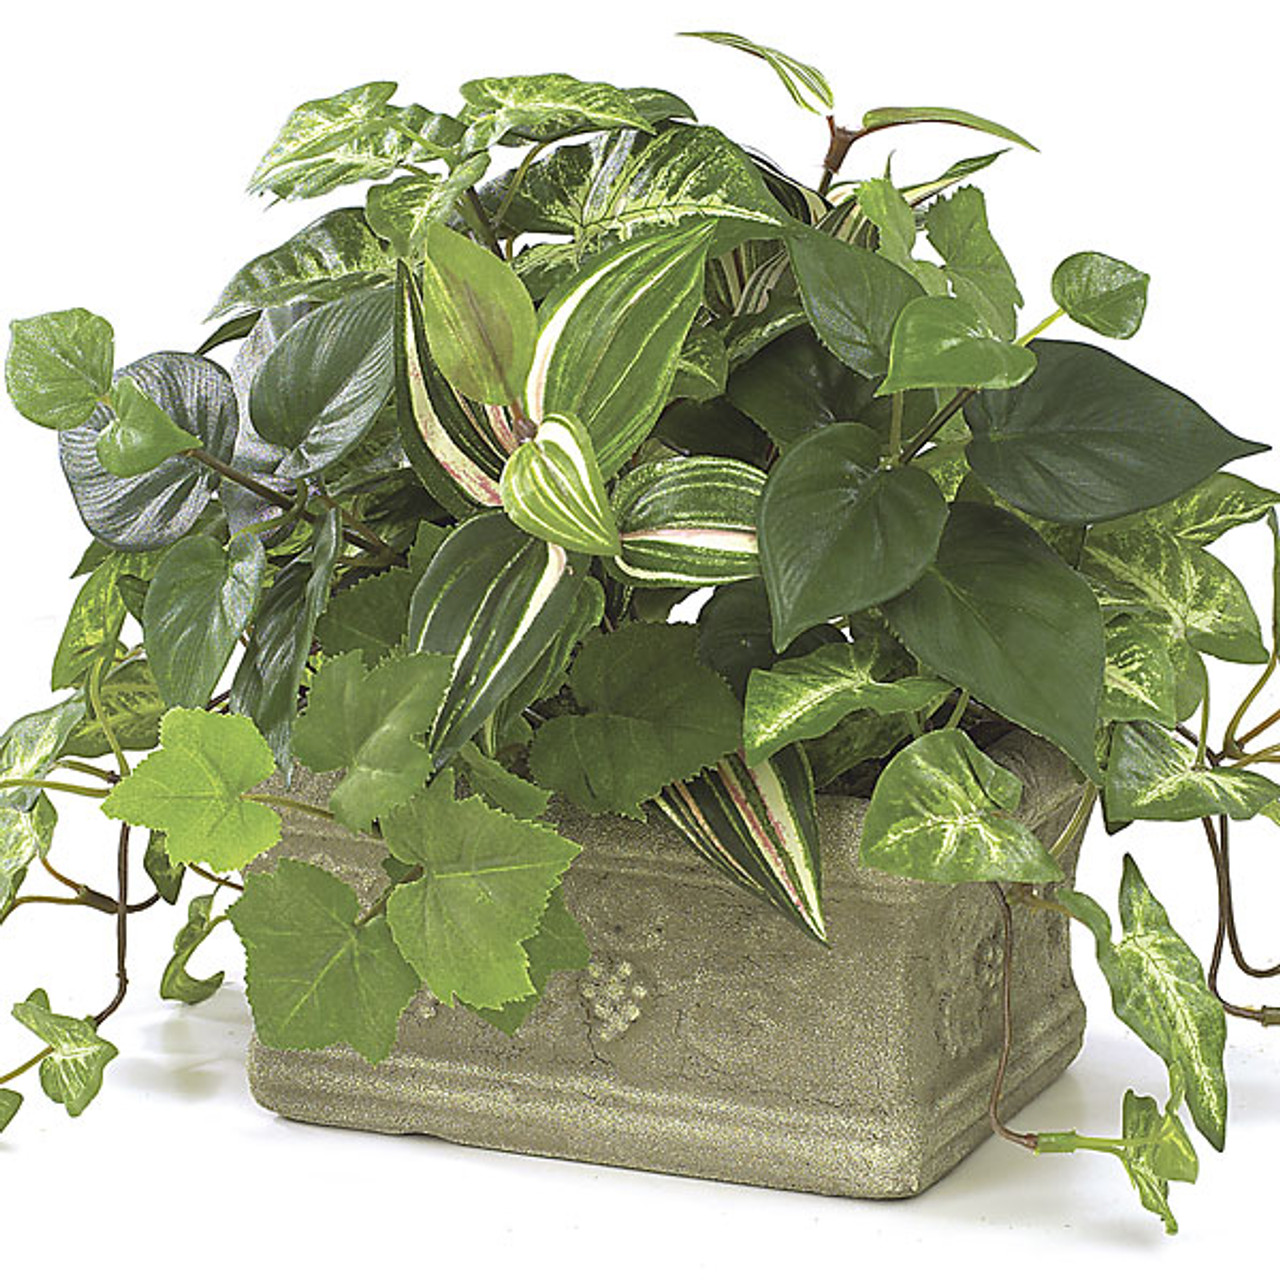 9 Inch Potted Syngonium Wandering Jew Pothos Ivy Plant Autograph Foliages